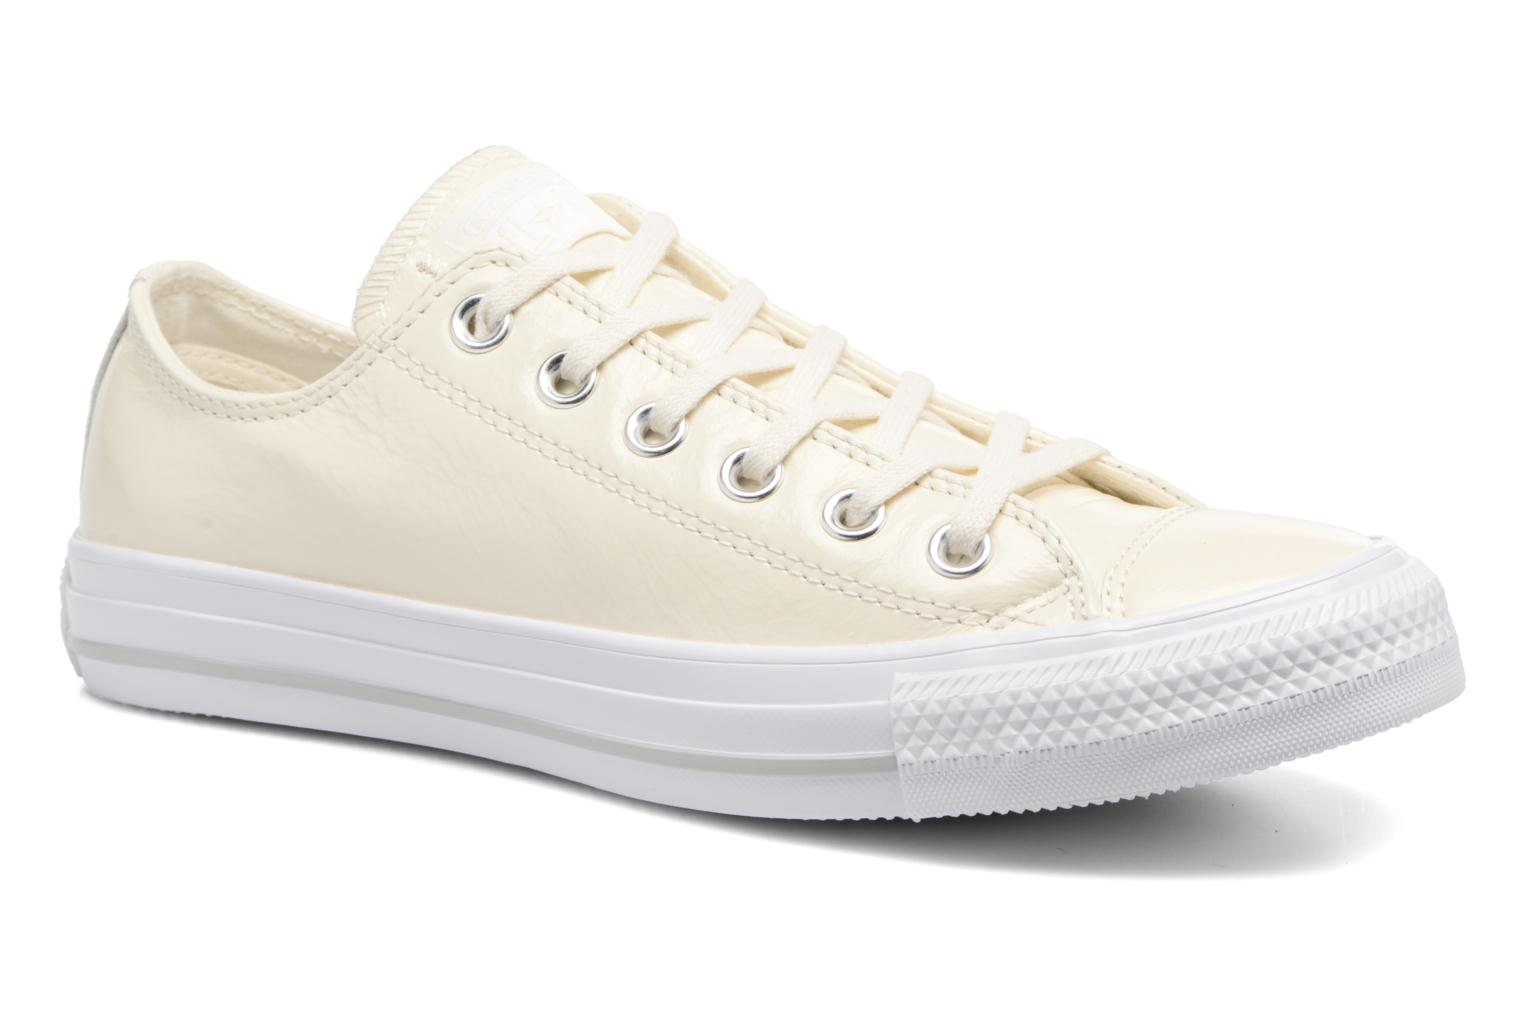 Converse Chaussures CHUCK TAYLOR ALL STAR CRINKLED PATENT LEATHER OX Livraison Gratuite Recommander Footlocker Pas Cher En Ligne Livraison Gratuite Dernier Professionnel En Ligne Acheter Pas Cher Footlocker 1tnRzw